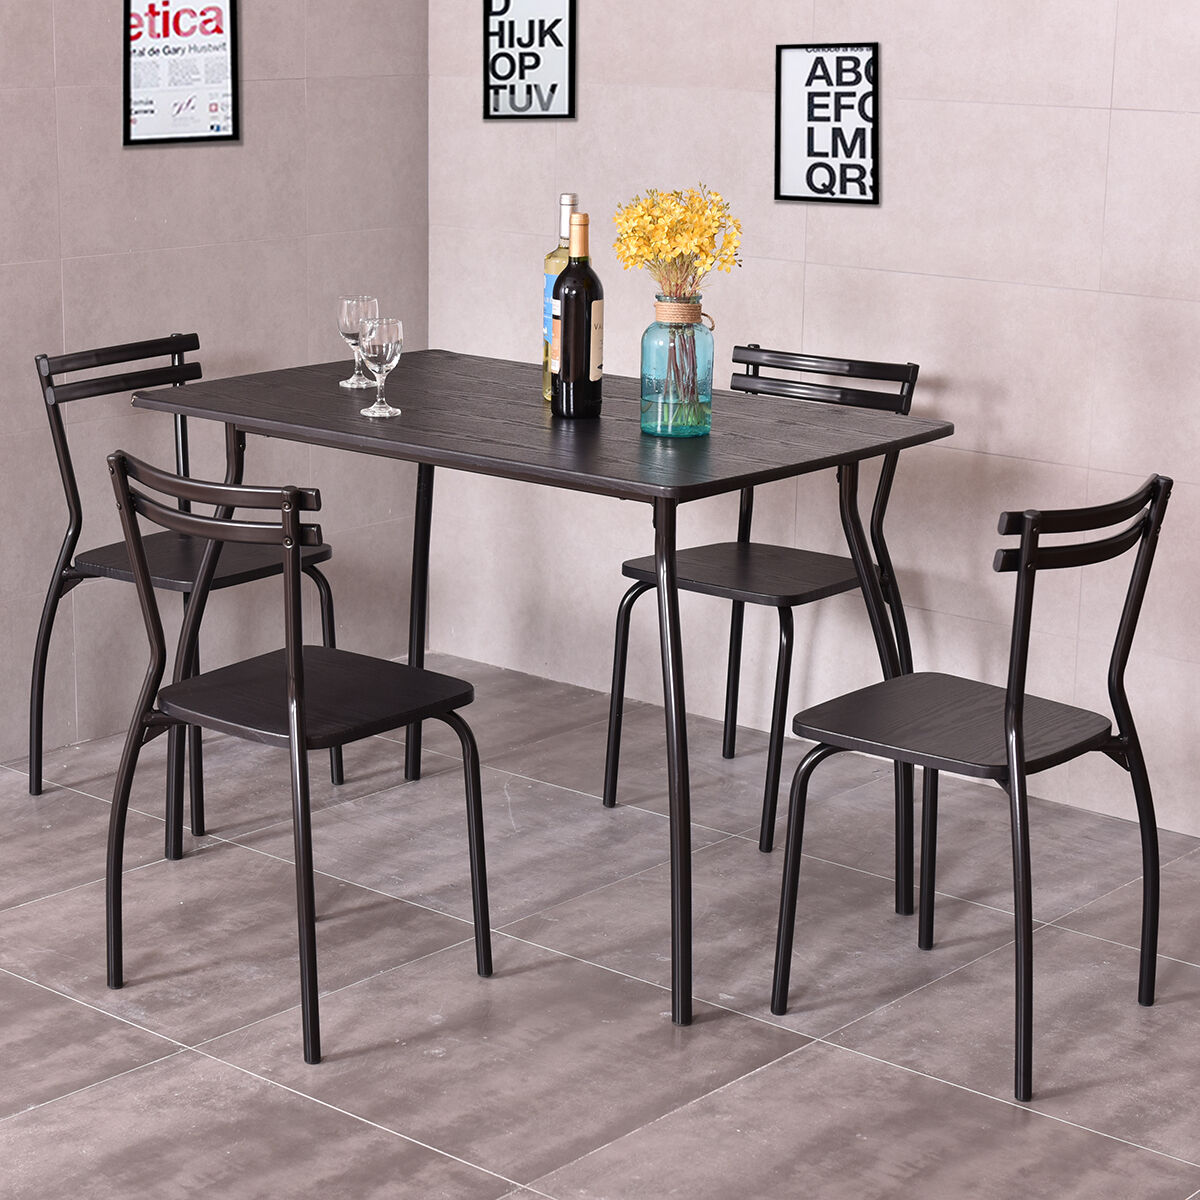 picture 1 of 10     giantex furniture table and 4 chairs home kitchen room 5 piece      rh   ebay com